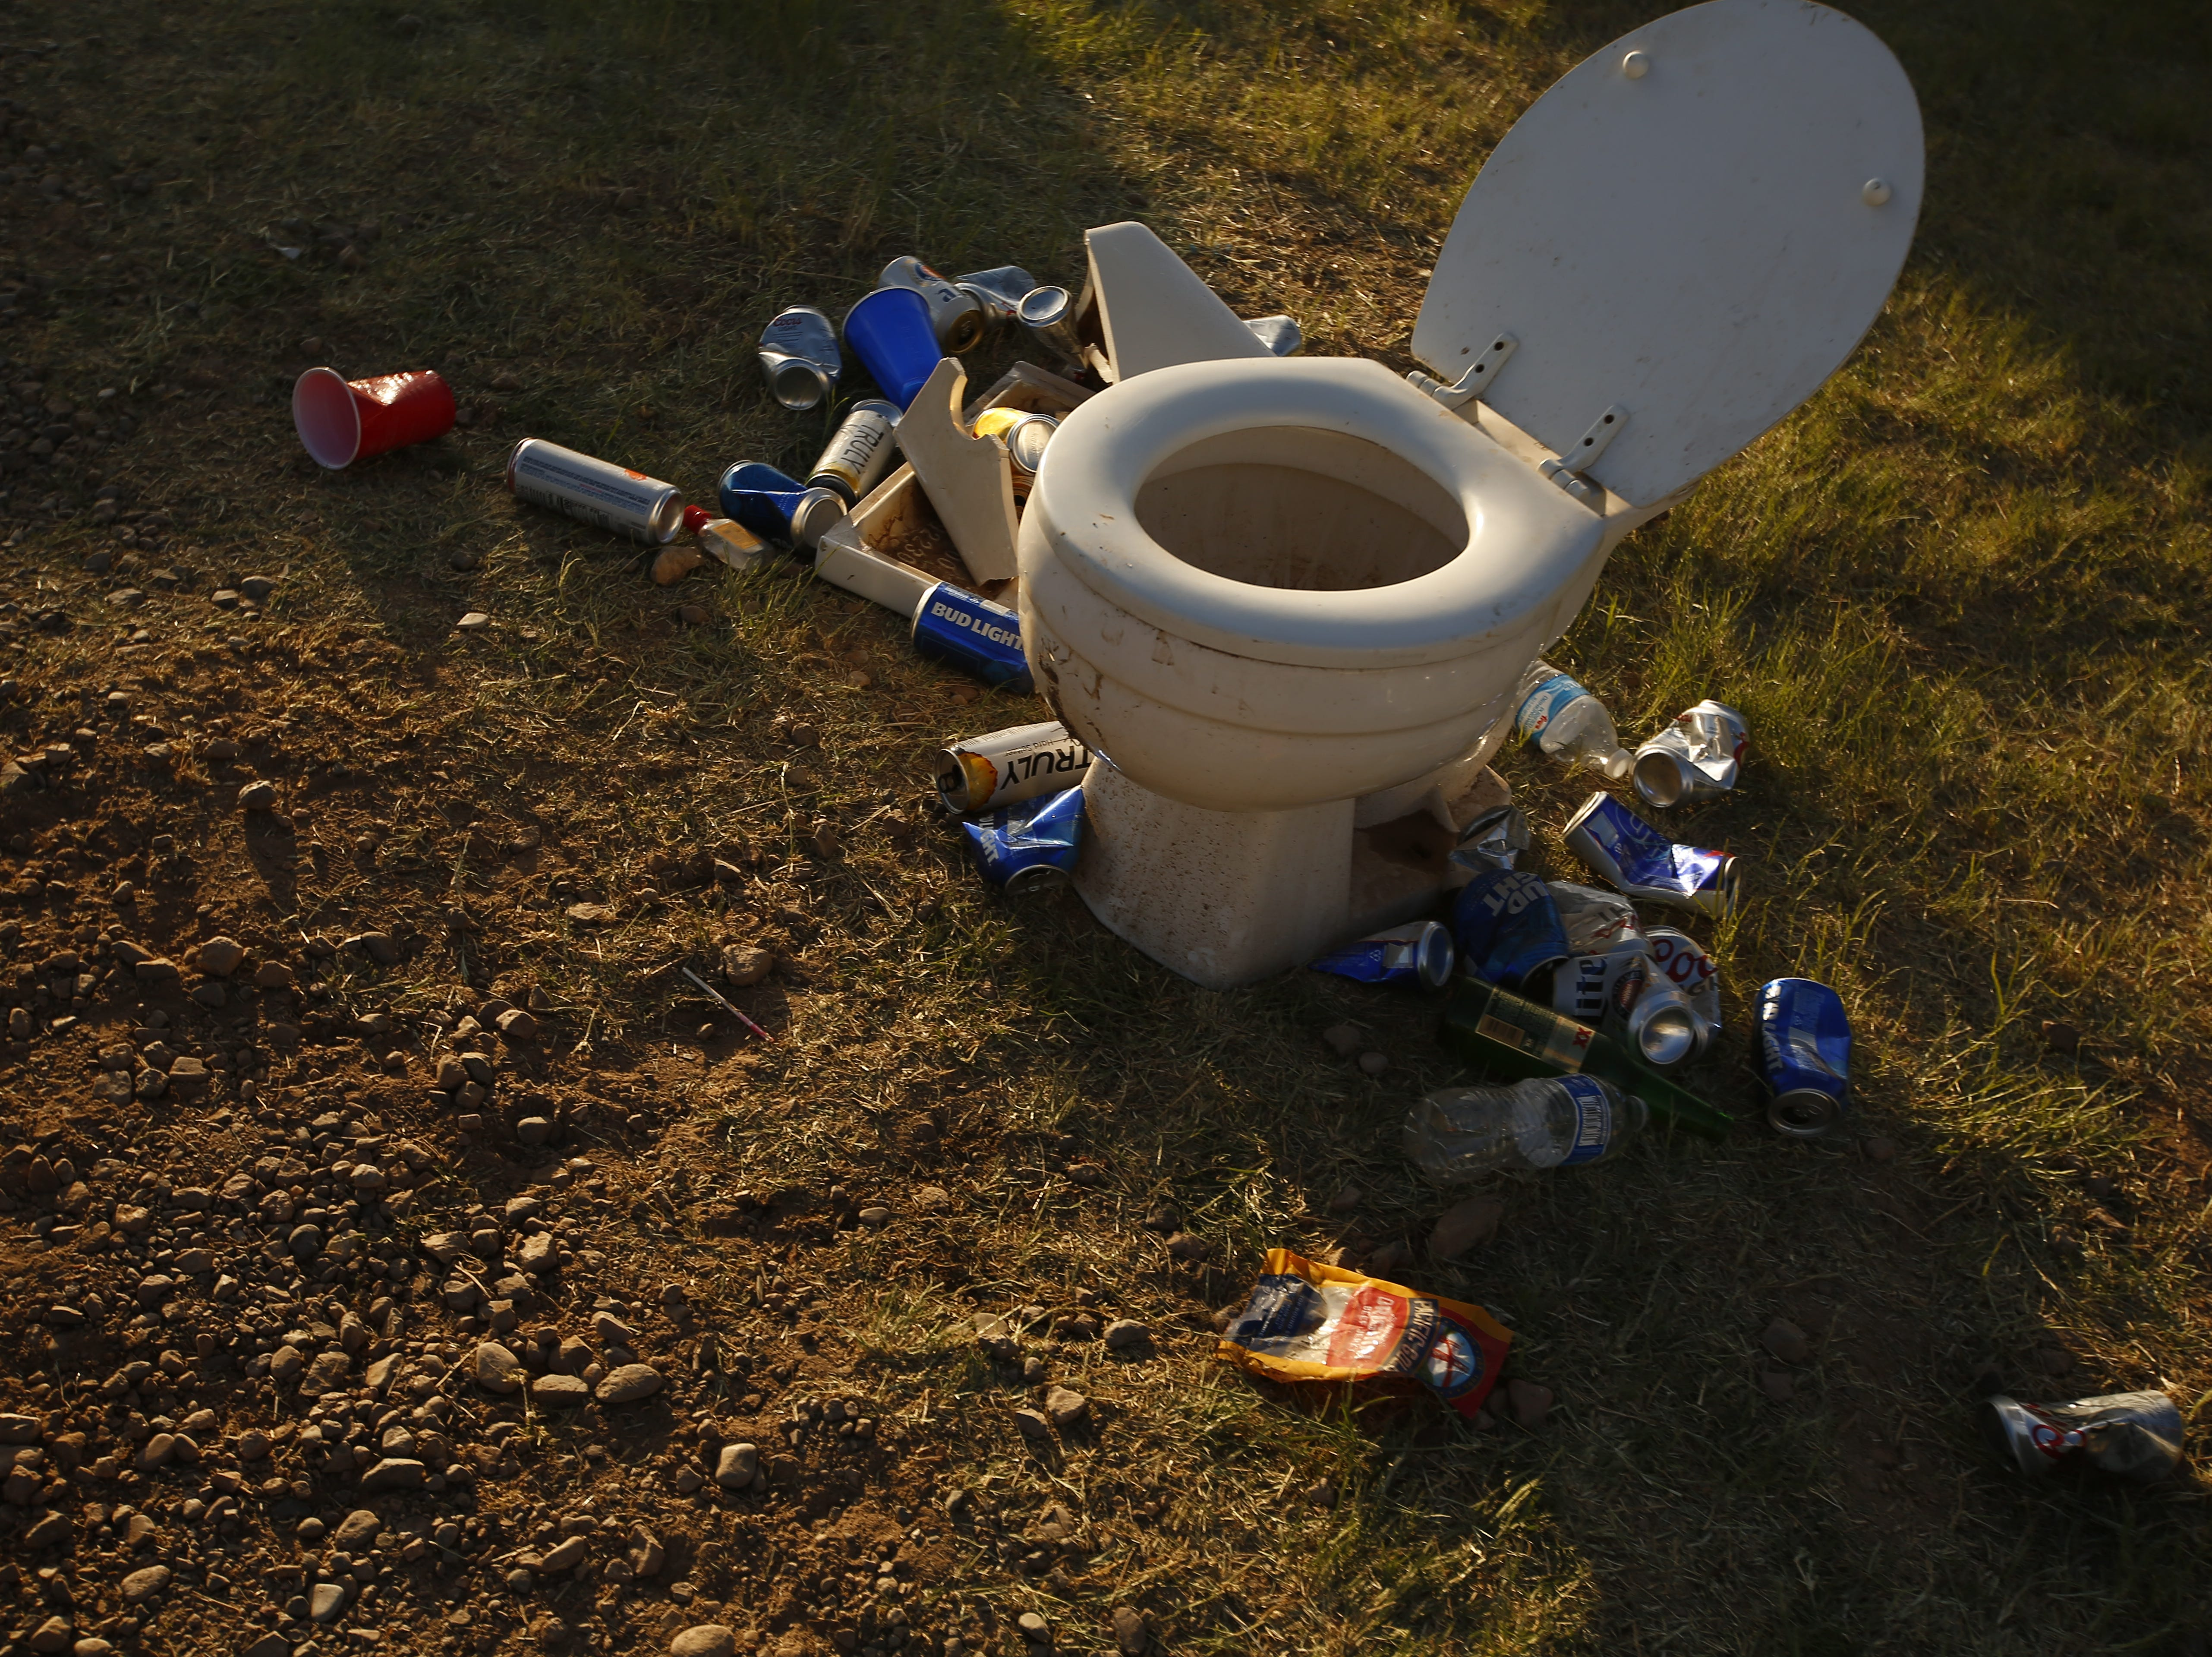 A toilet at the campsites during Country Thunder in Florence, Ariz. on Friday, April 12, 2019.